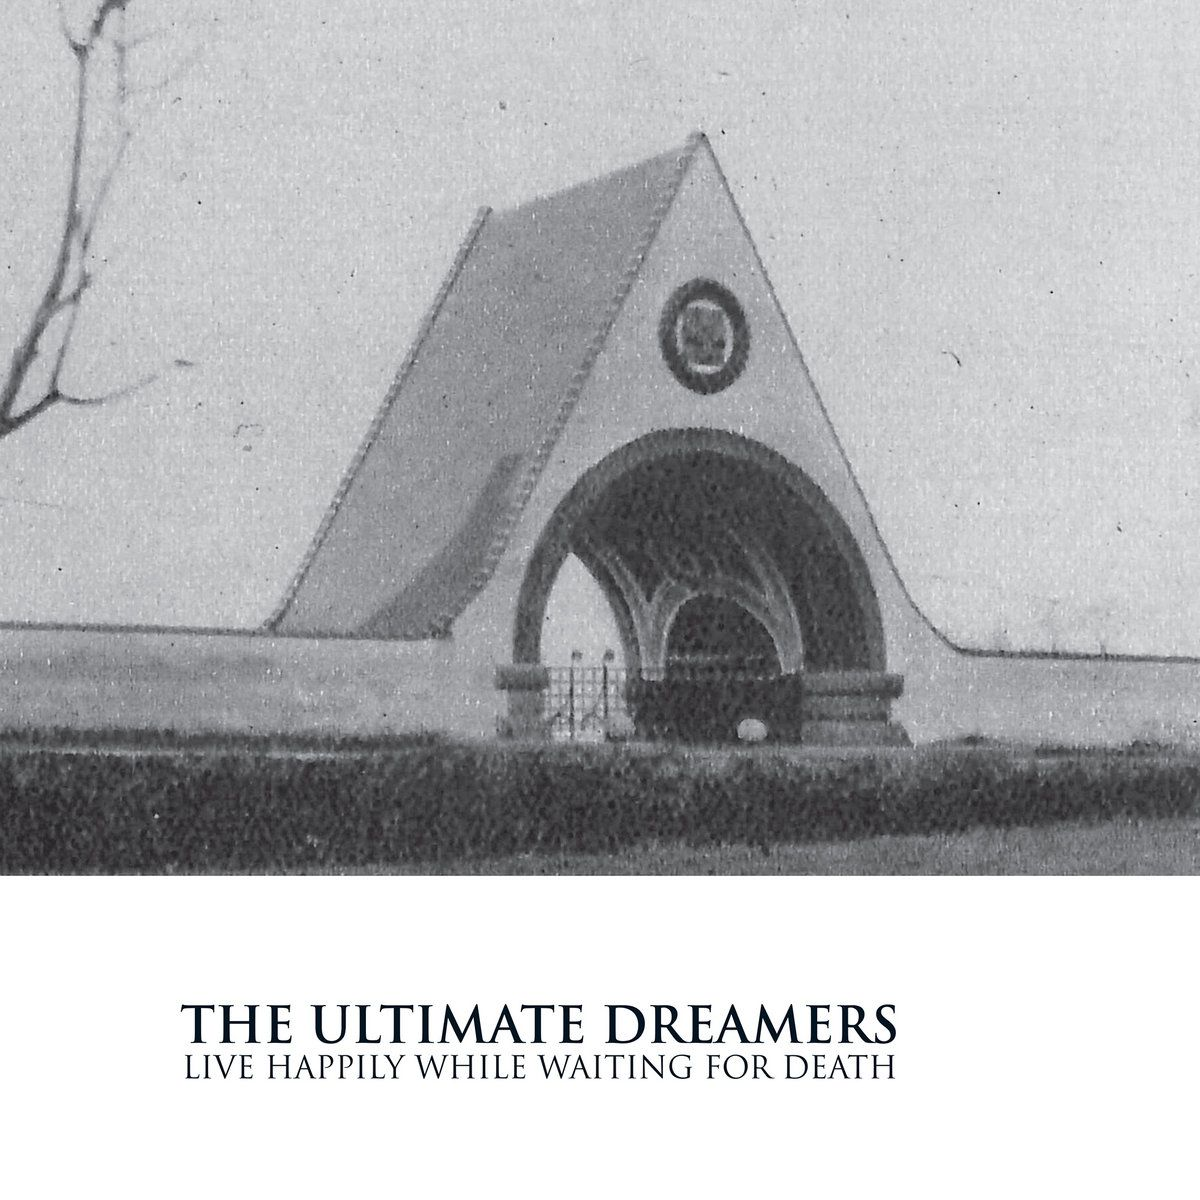 🎵 The Ultimate Dreamers : Live happily while waiting for death, Limited edition CD